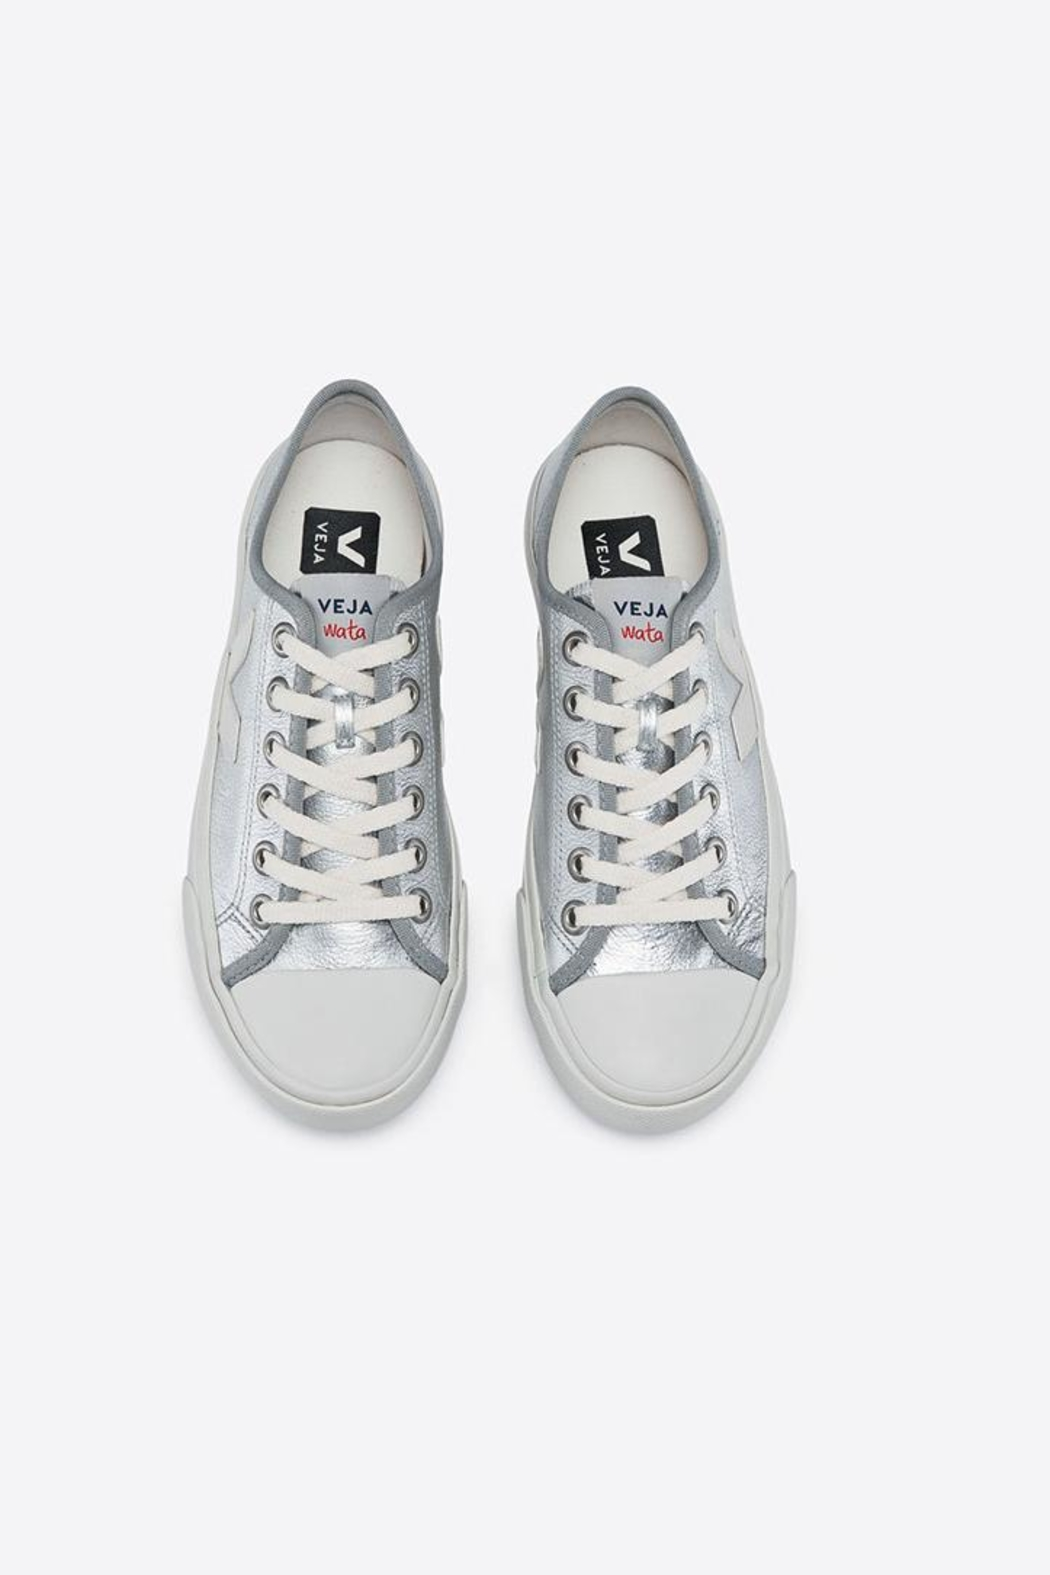 Veja Wata Leather Silver Shoes - Front Full Image